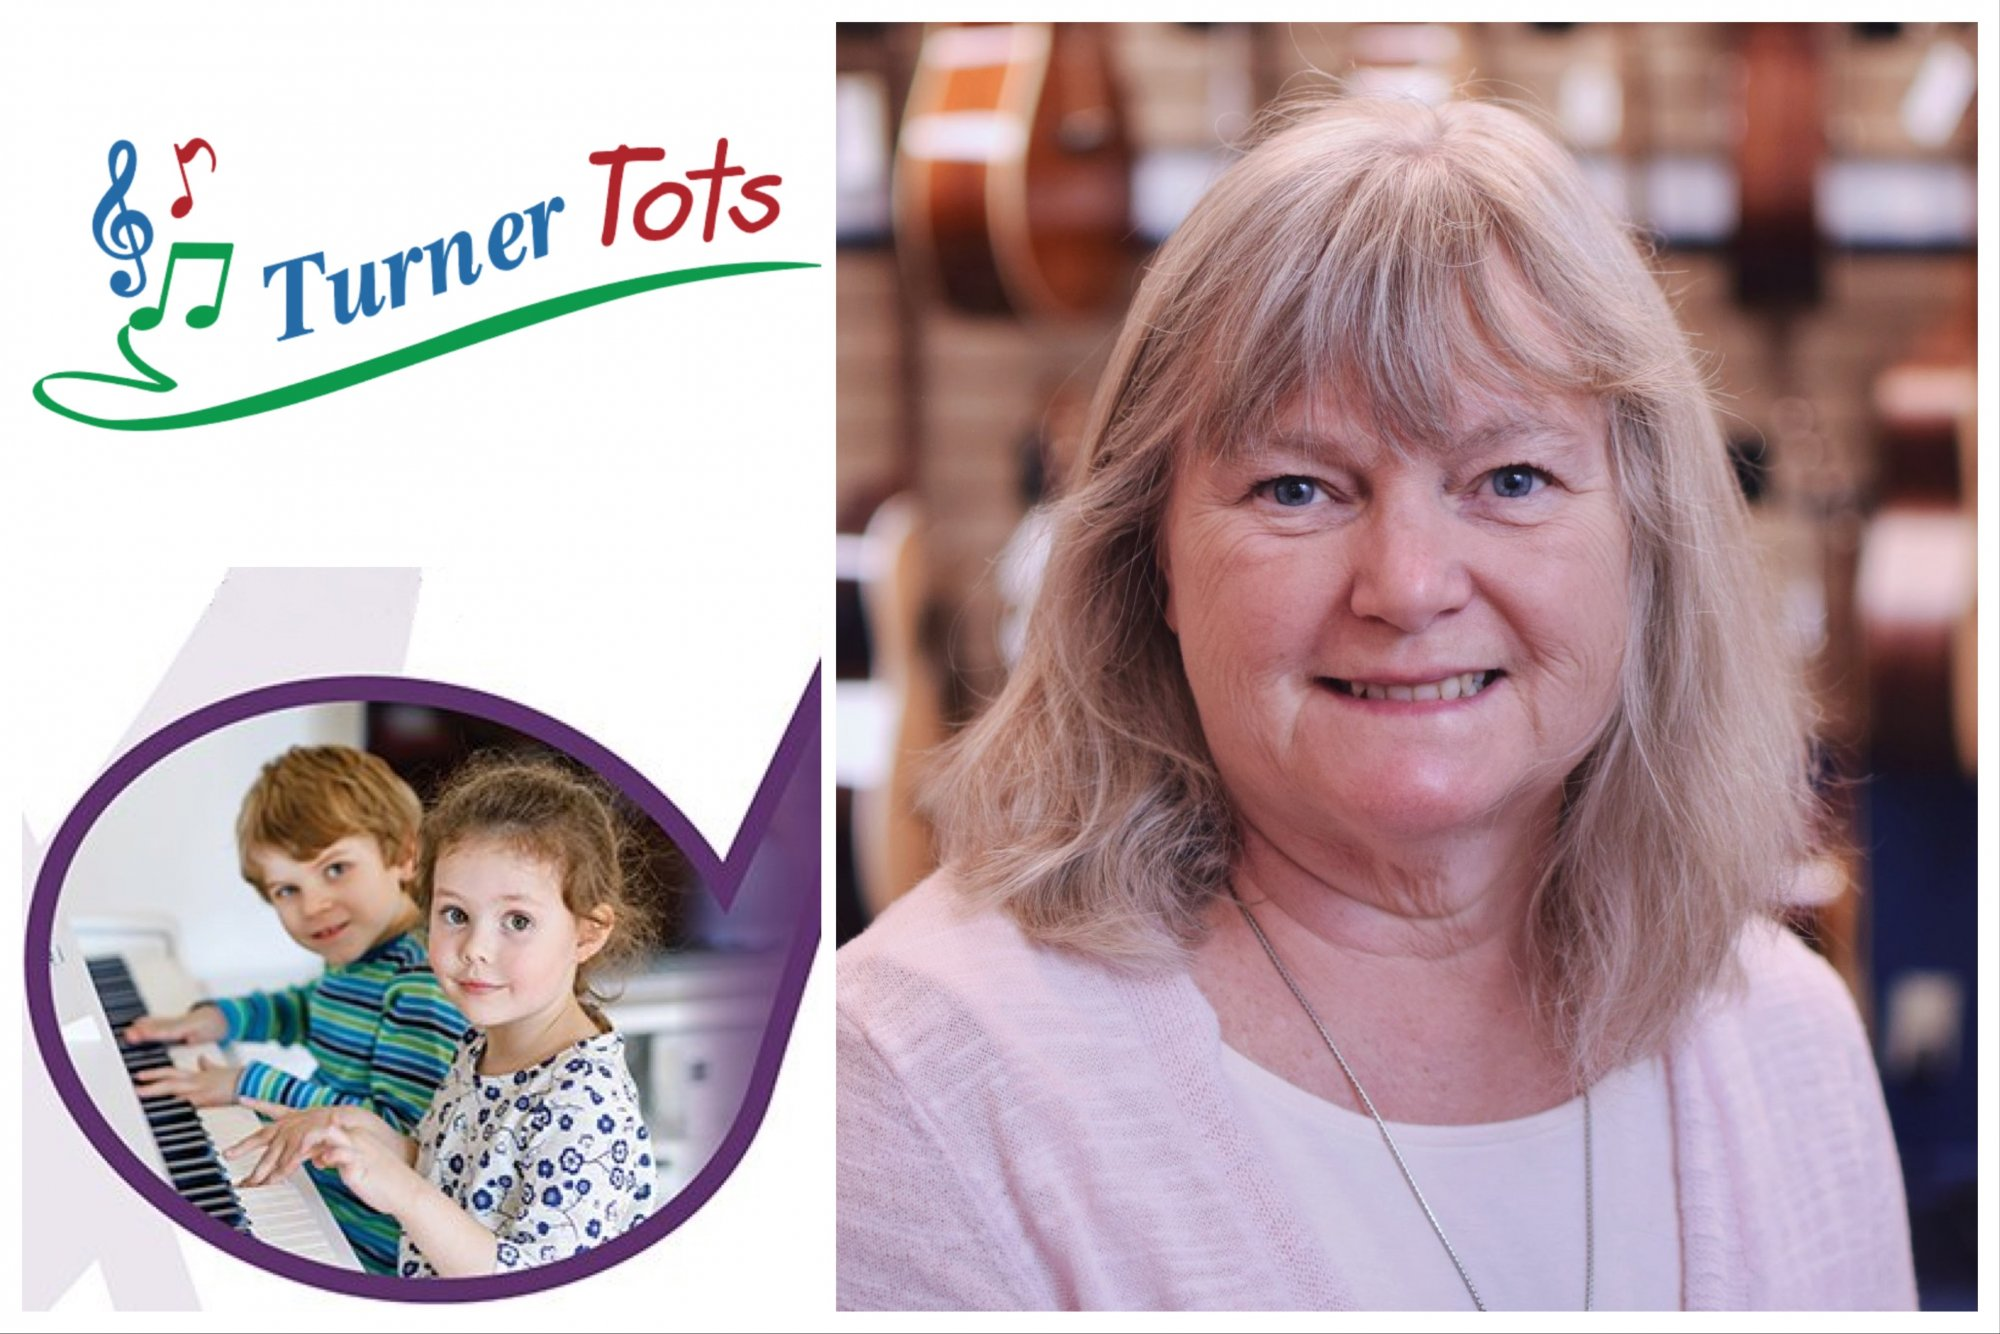 Turner Tots Preschool Group Classes - Ages 3-5yrs